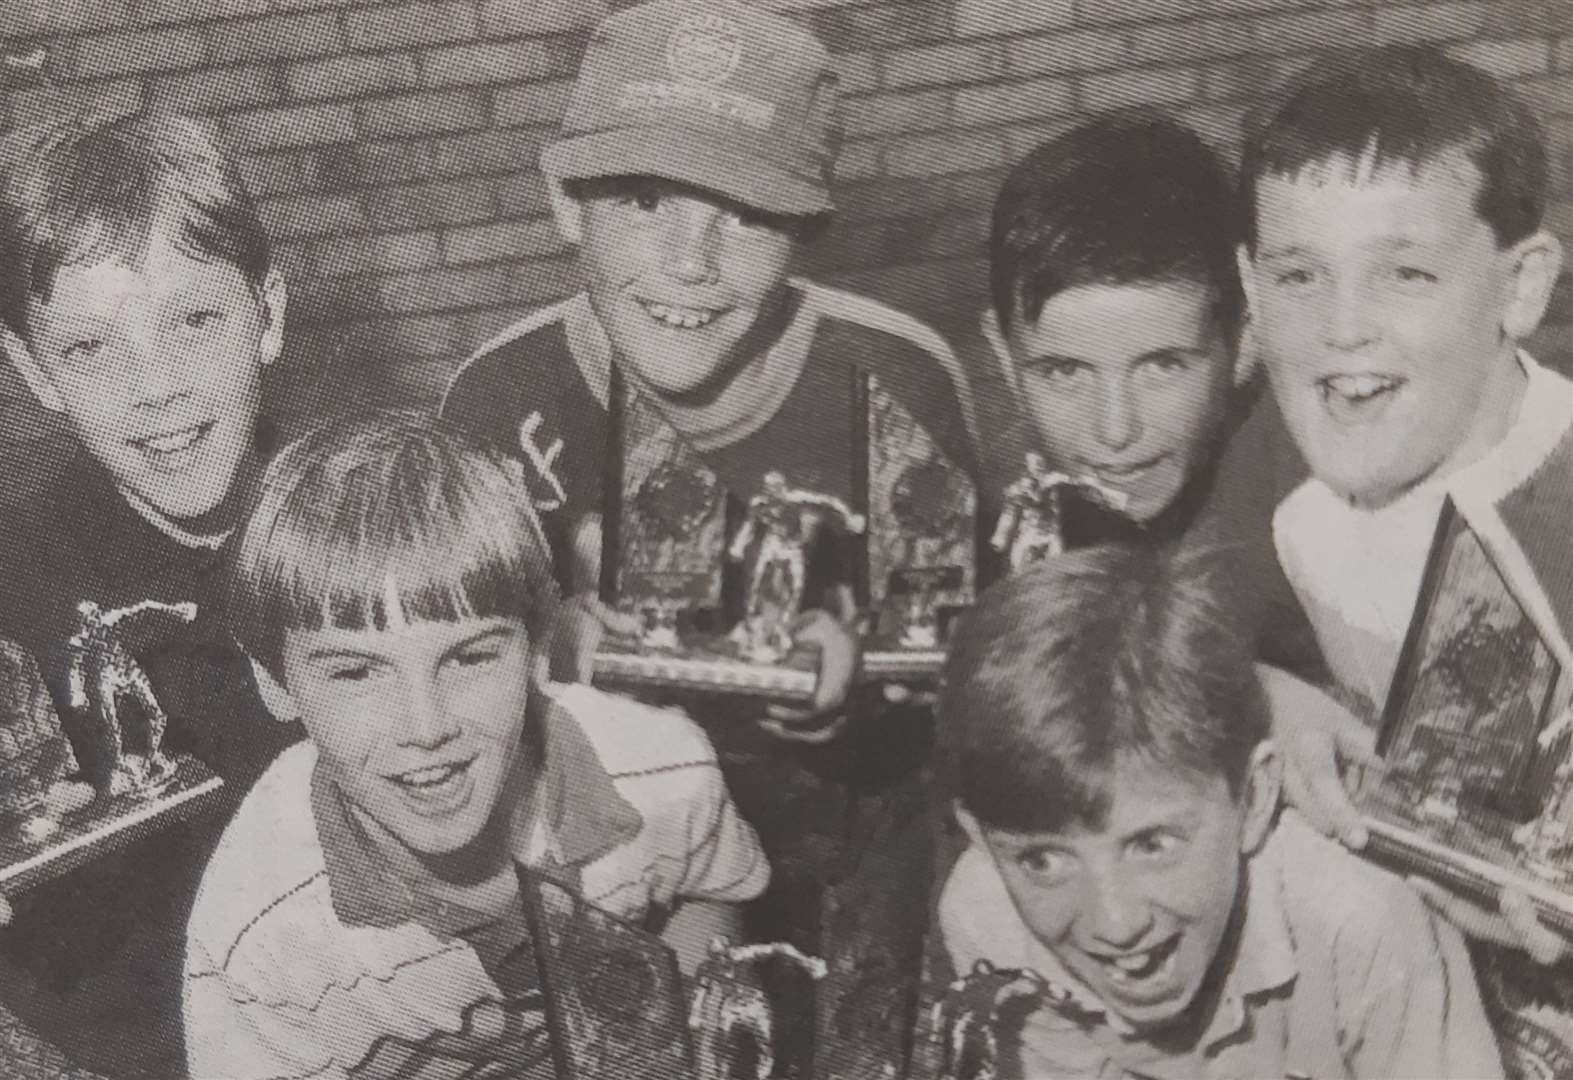 NOSTALGIA: Young footballers pictured 25 years ago